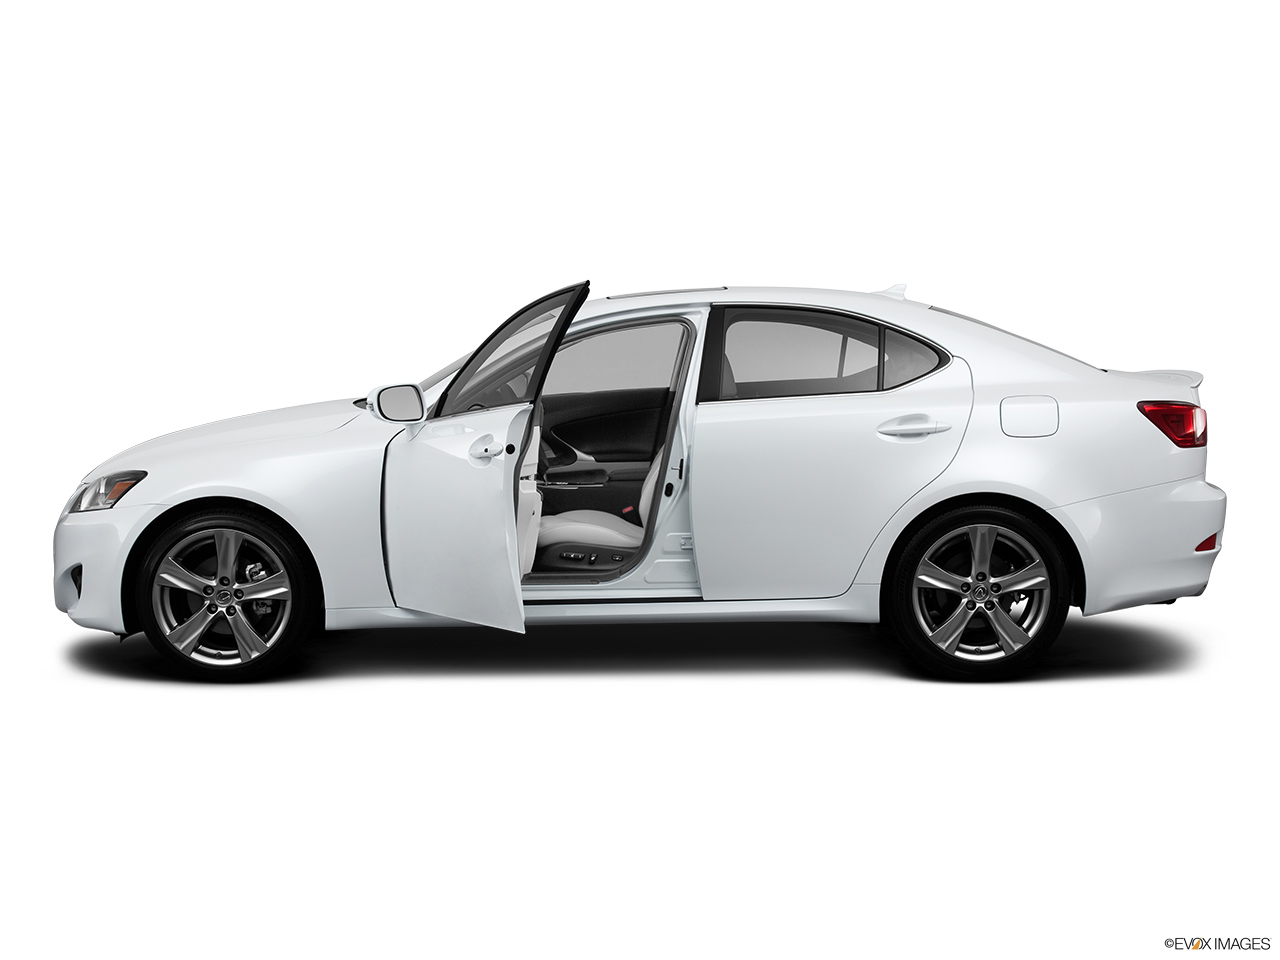 2013 Lexus IS 250 IS 250 RWD Driver's side profile with drivers side door open.